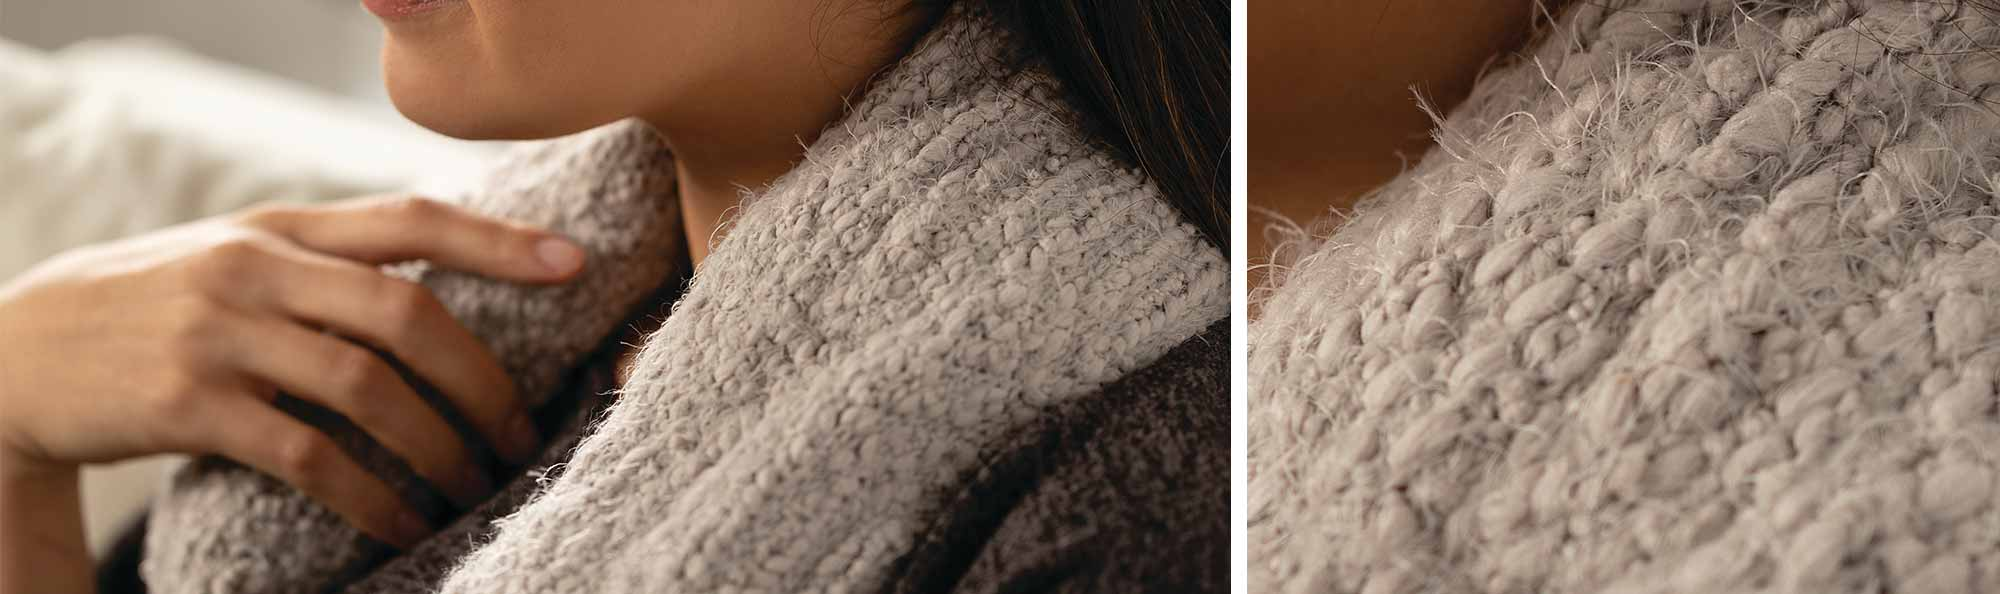 a Neck wrap that is soft and comfortable around a women and another women showing off her scarf